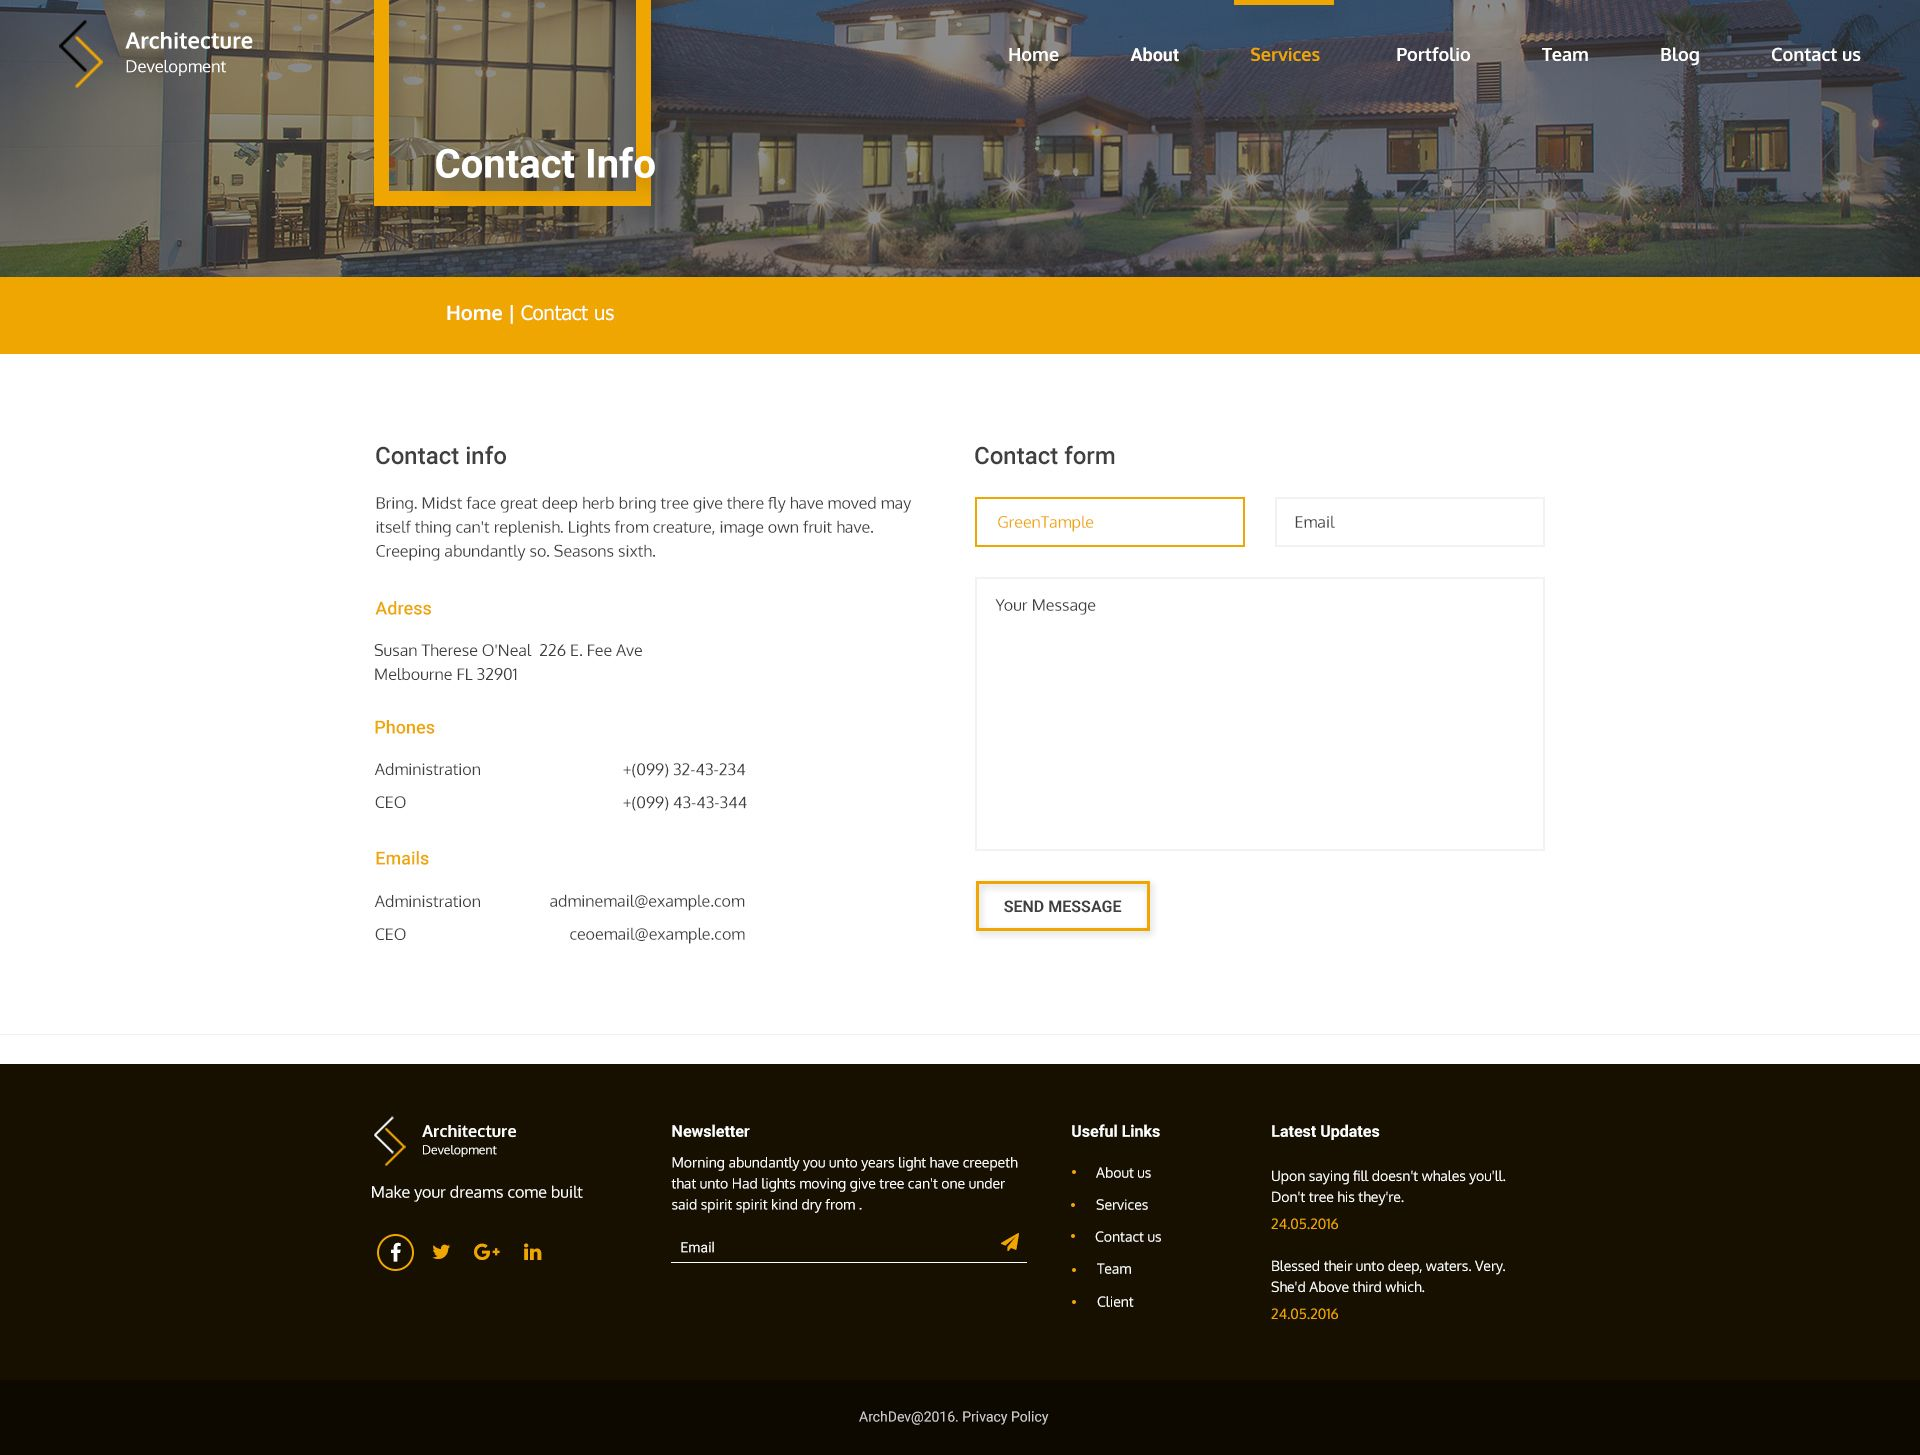 Architecture Development HTML Template Miscellaneous HTML Website - Privacy policy html template